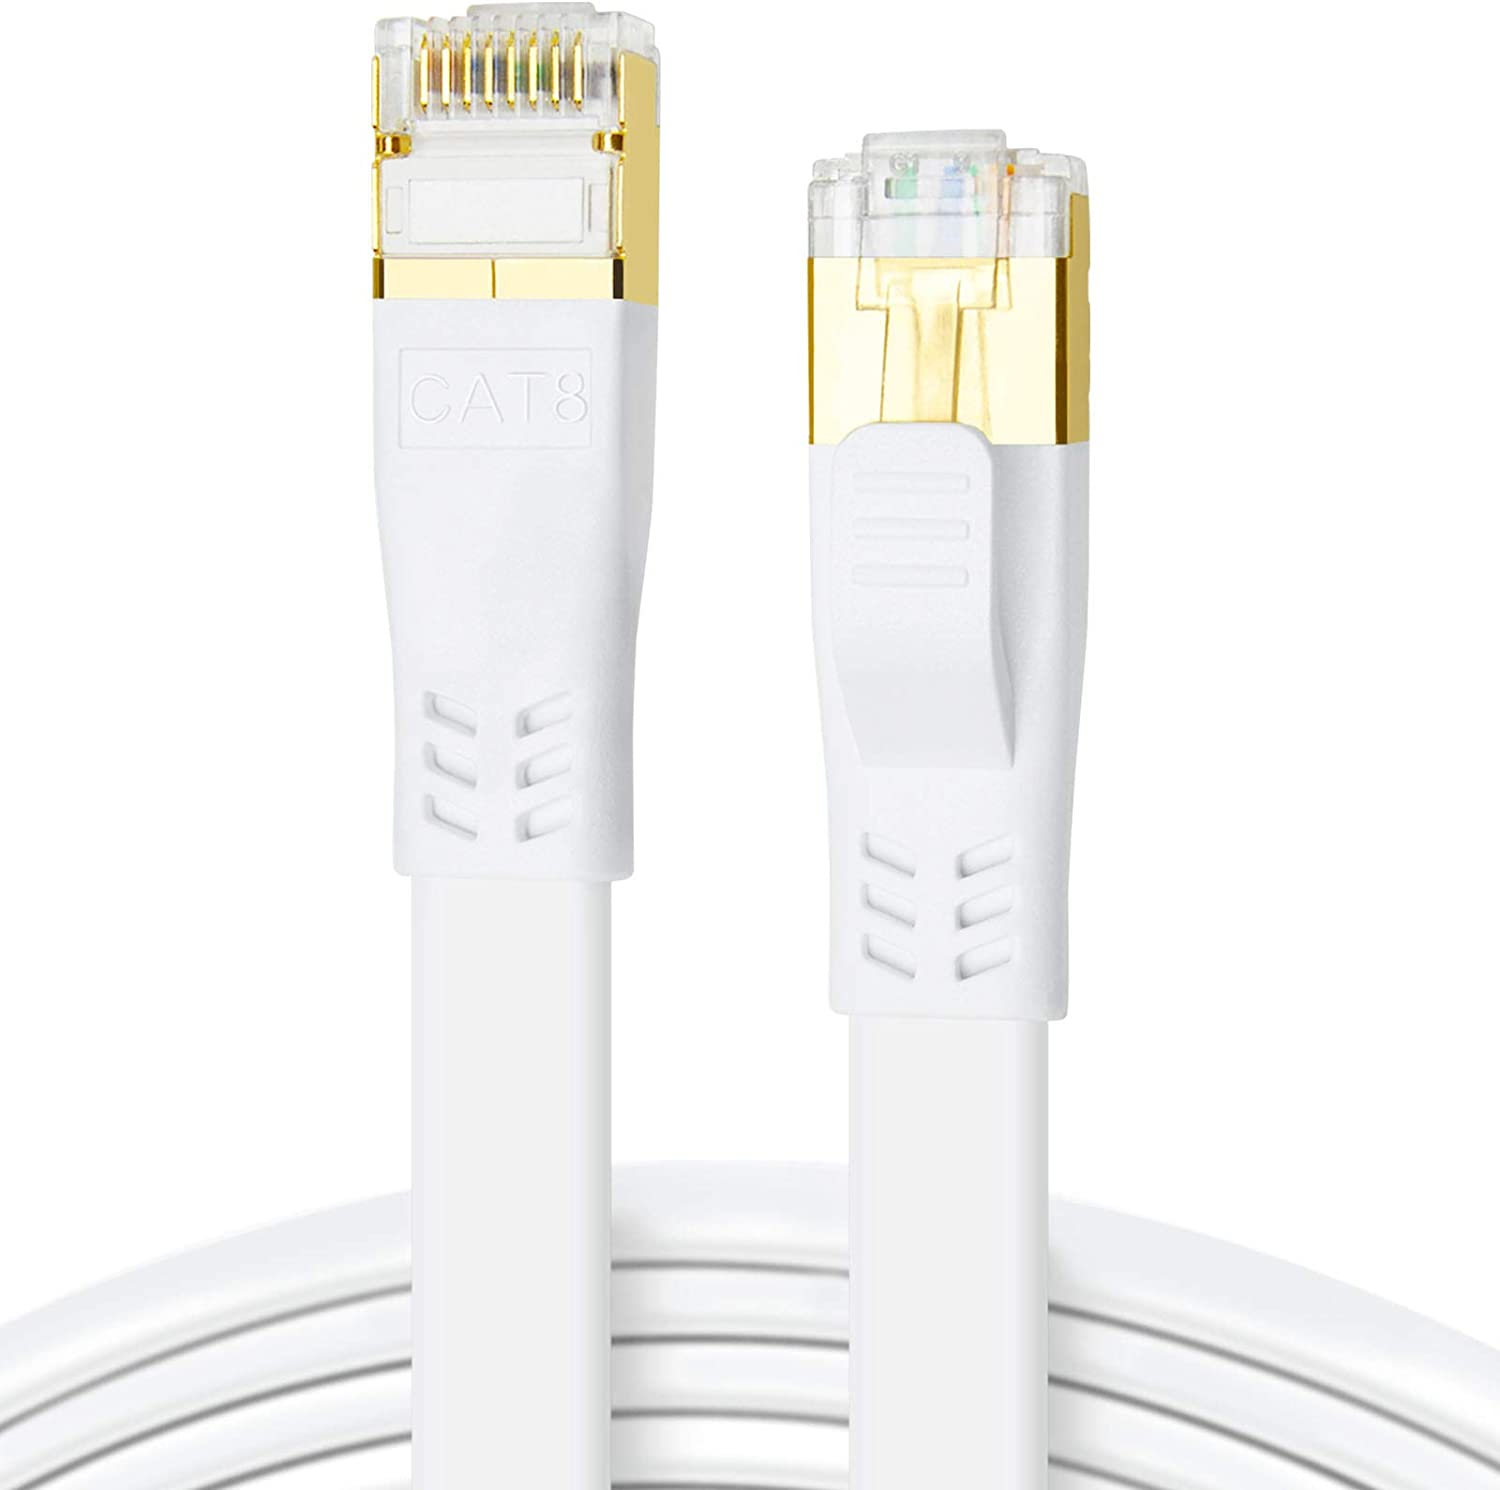 CAT8 Ethernet Cable 100ft 26AWG Long Beach Mall New item Speed High Heavy 2000MHz 40Gbps